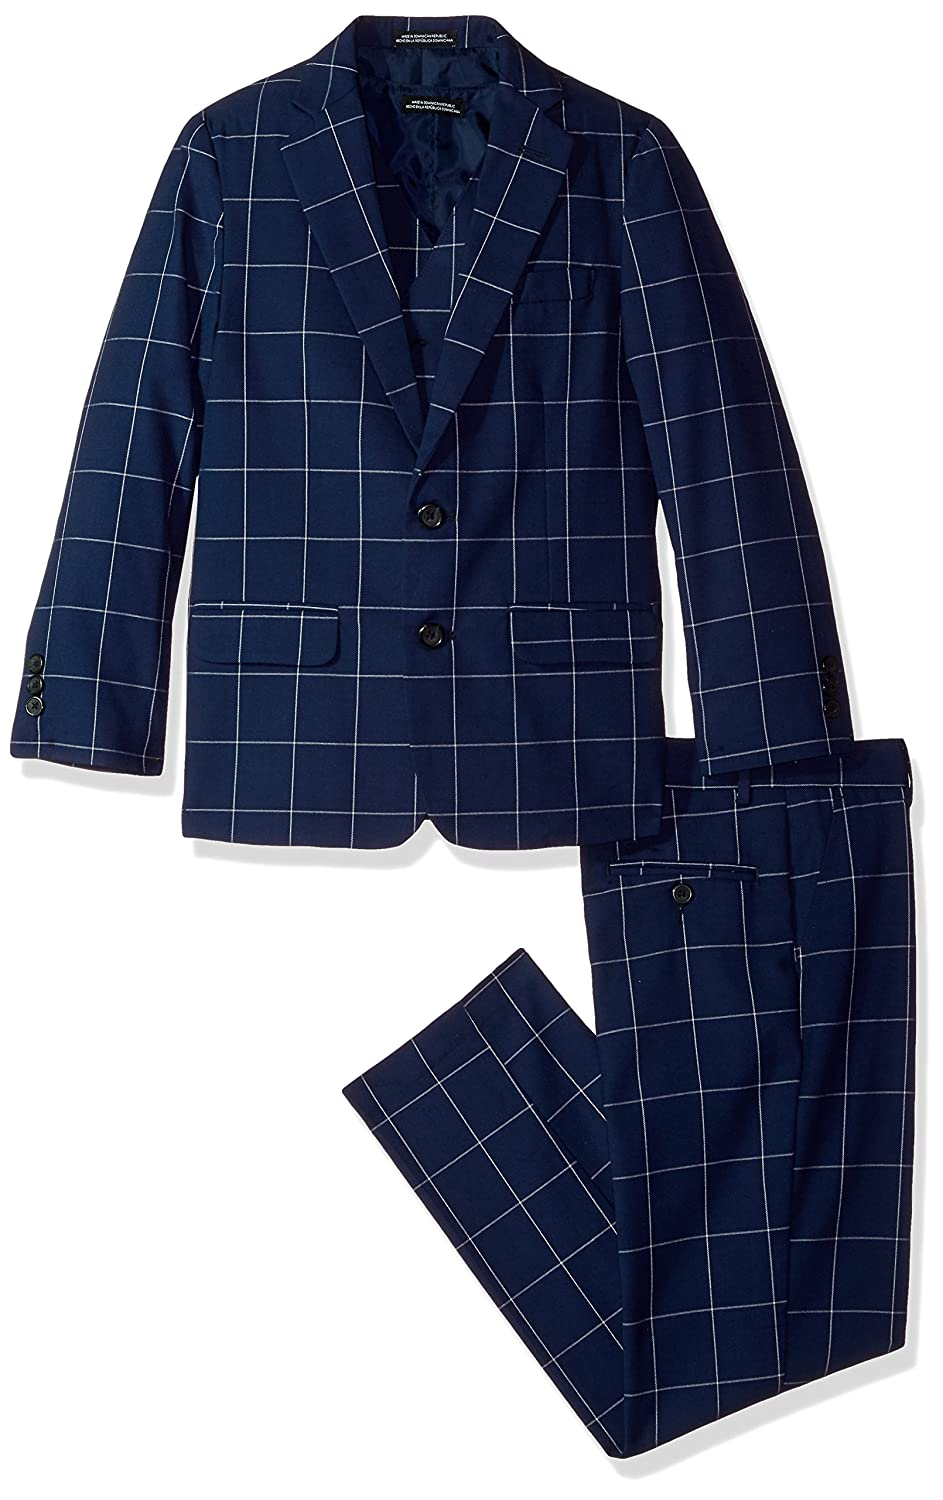 Kids 1950s Clothing & Costumes: Girls, Boys, Toddlers Steve Harvey Big Boys Three Piece Suit Set $32.16 AT vintagedancer.com